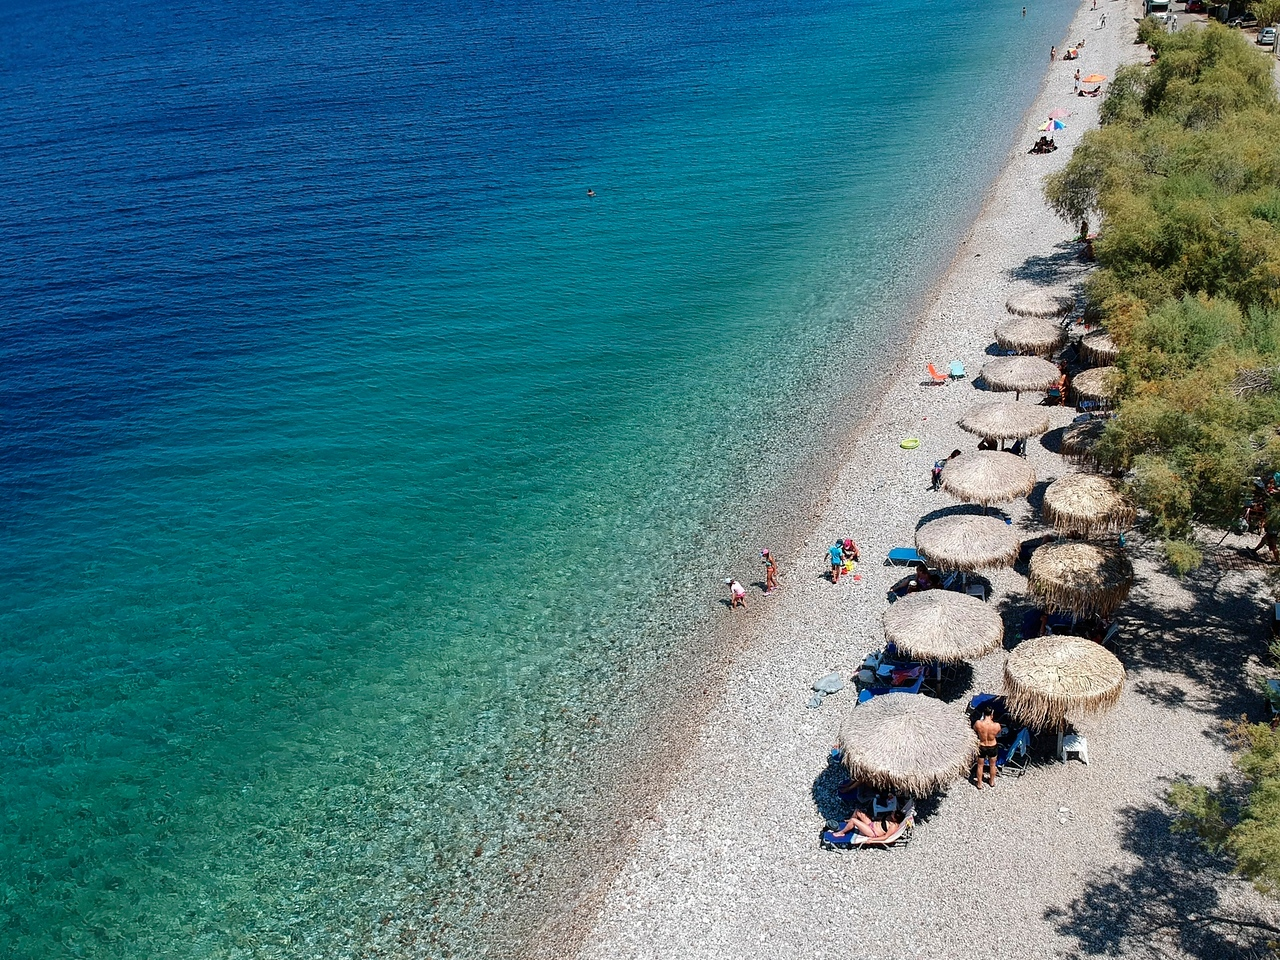 Pounta Beach at Trapeza,Peloponese,Greece